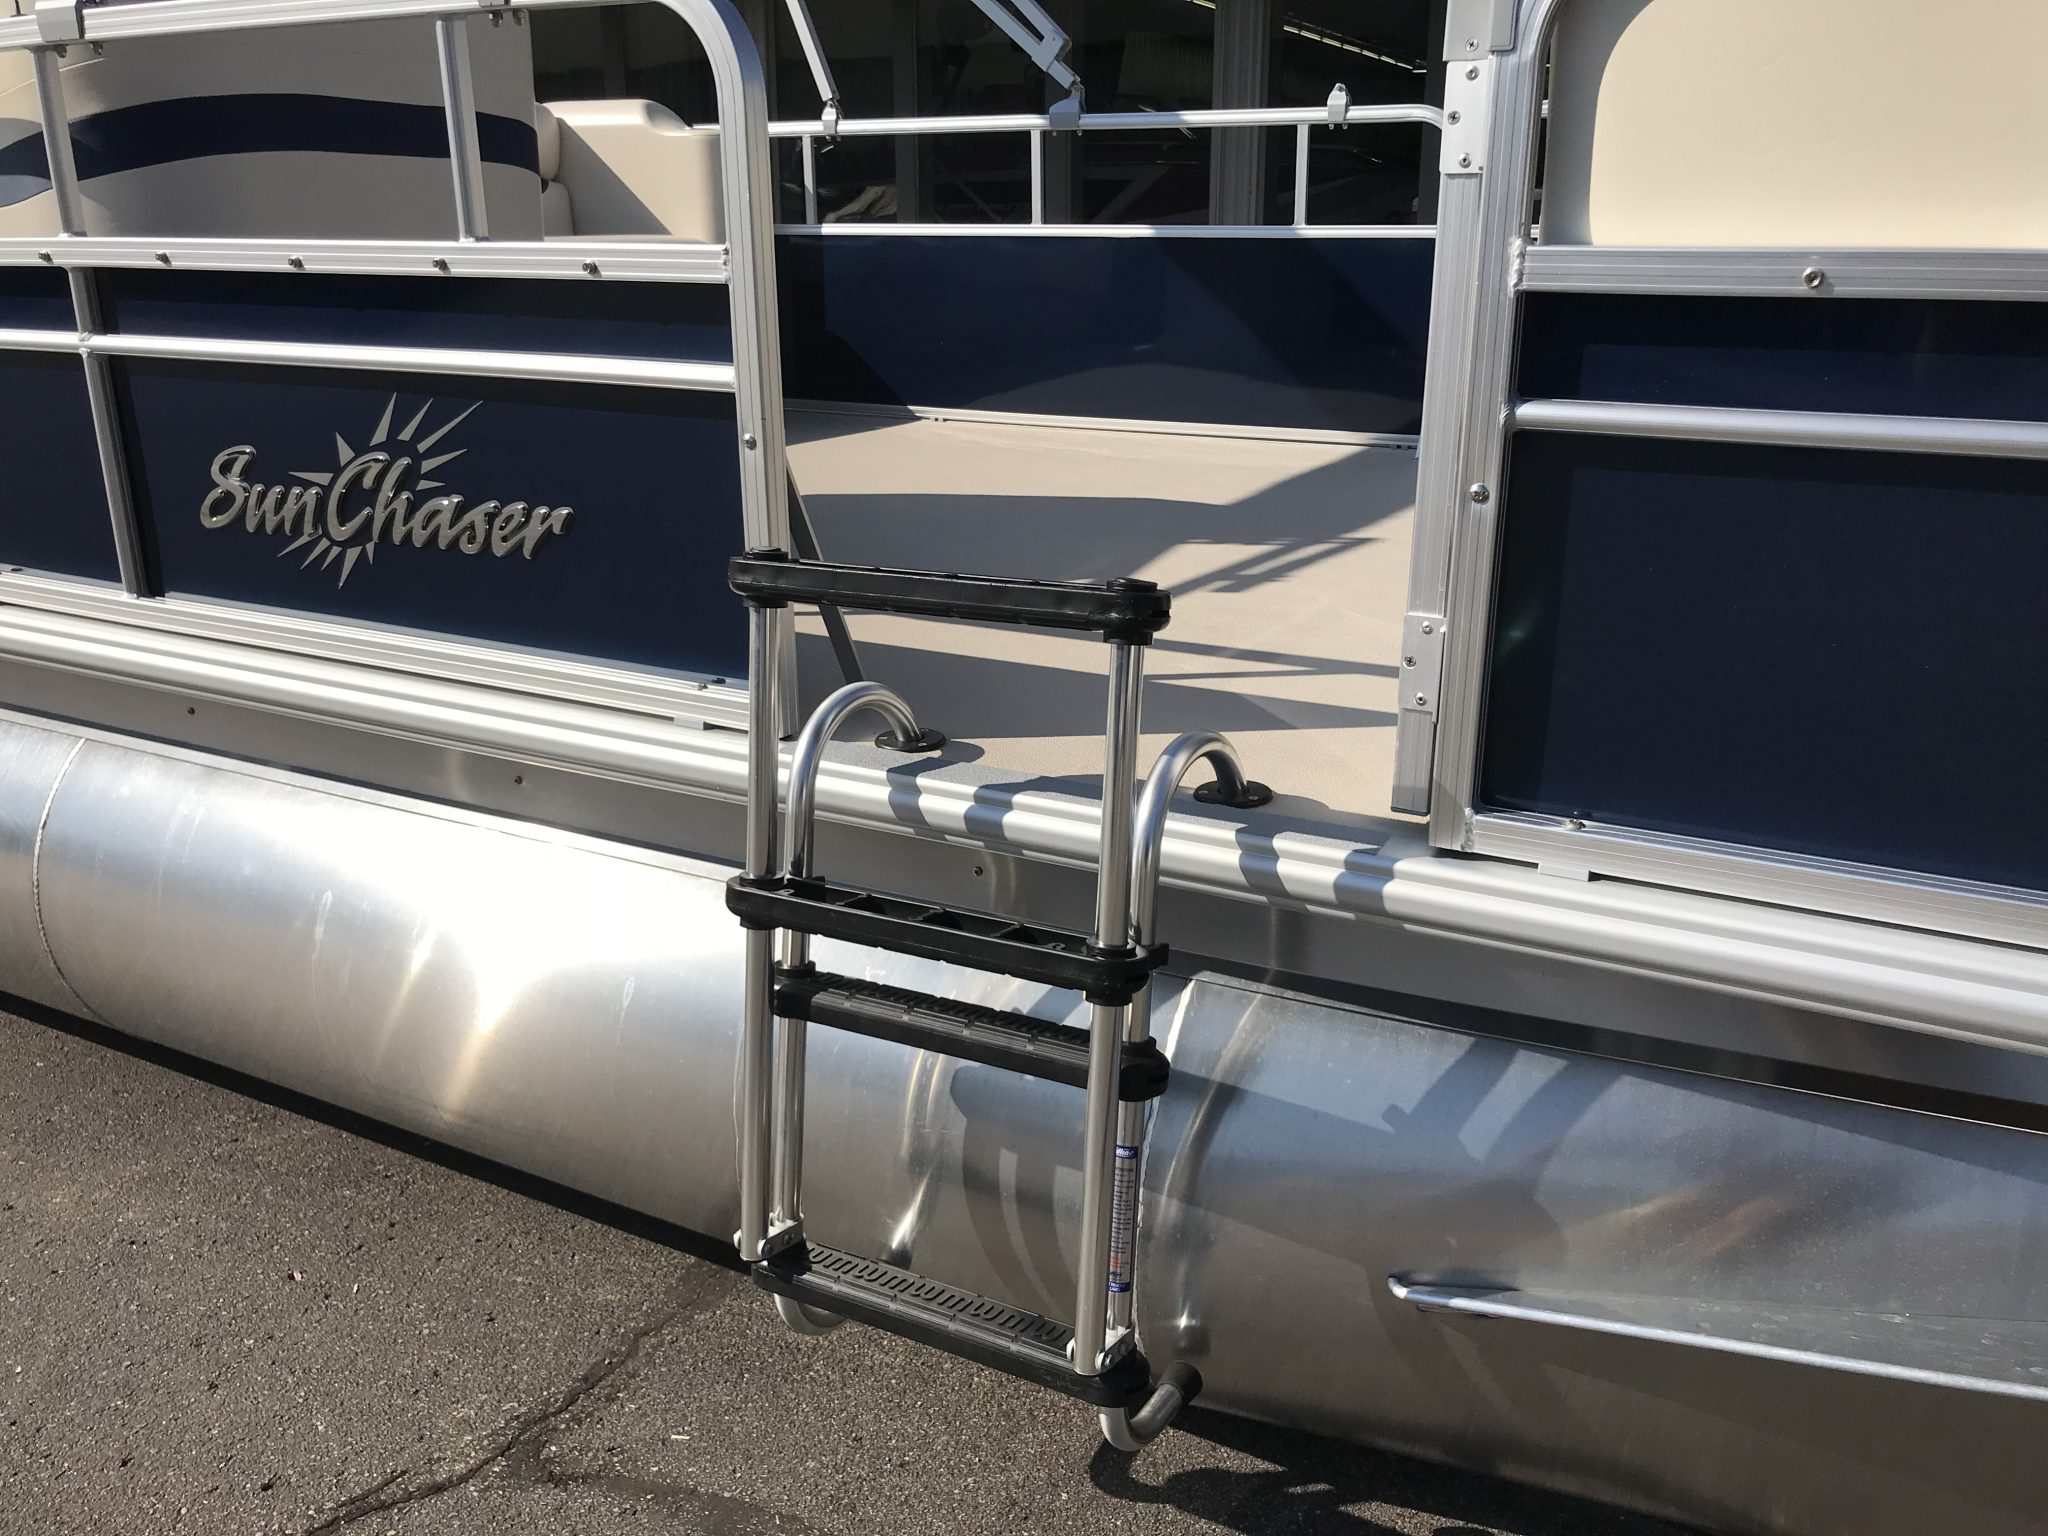 2019 SunChaser 816 Cruise Removable Gate Ladder